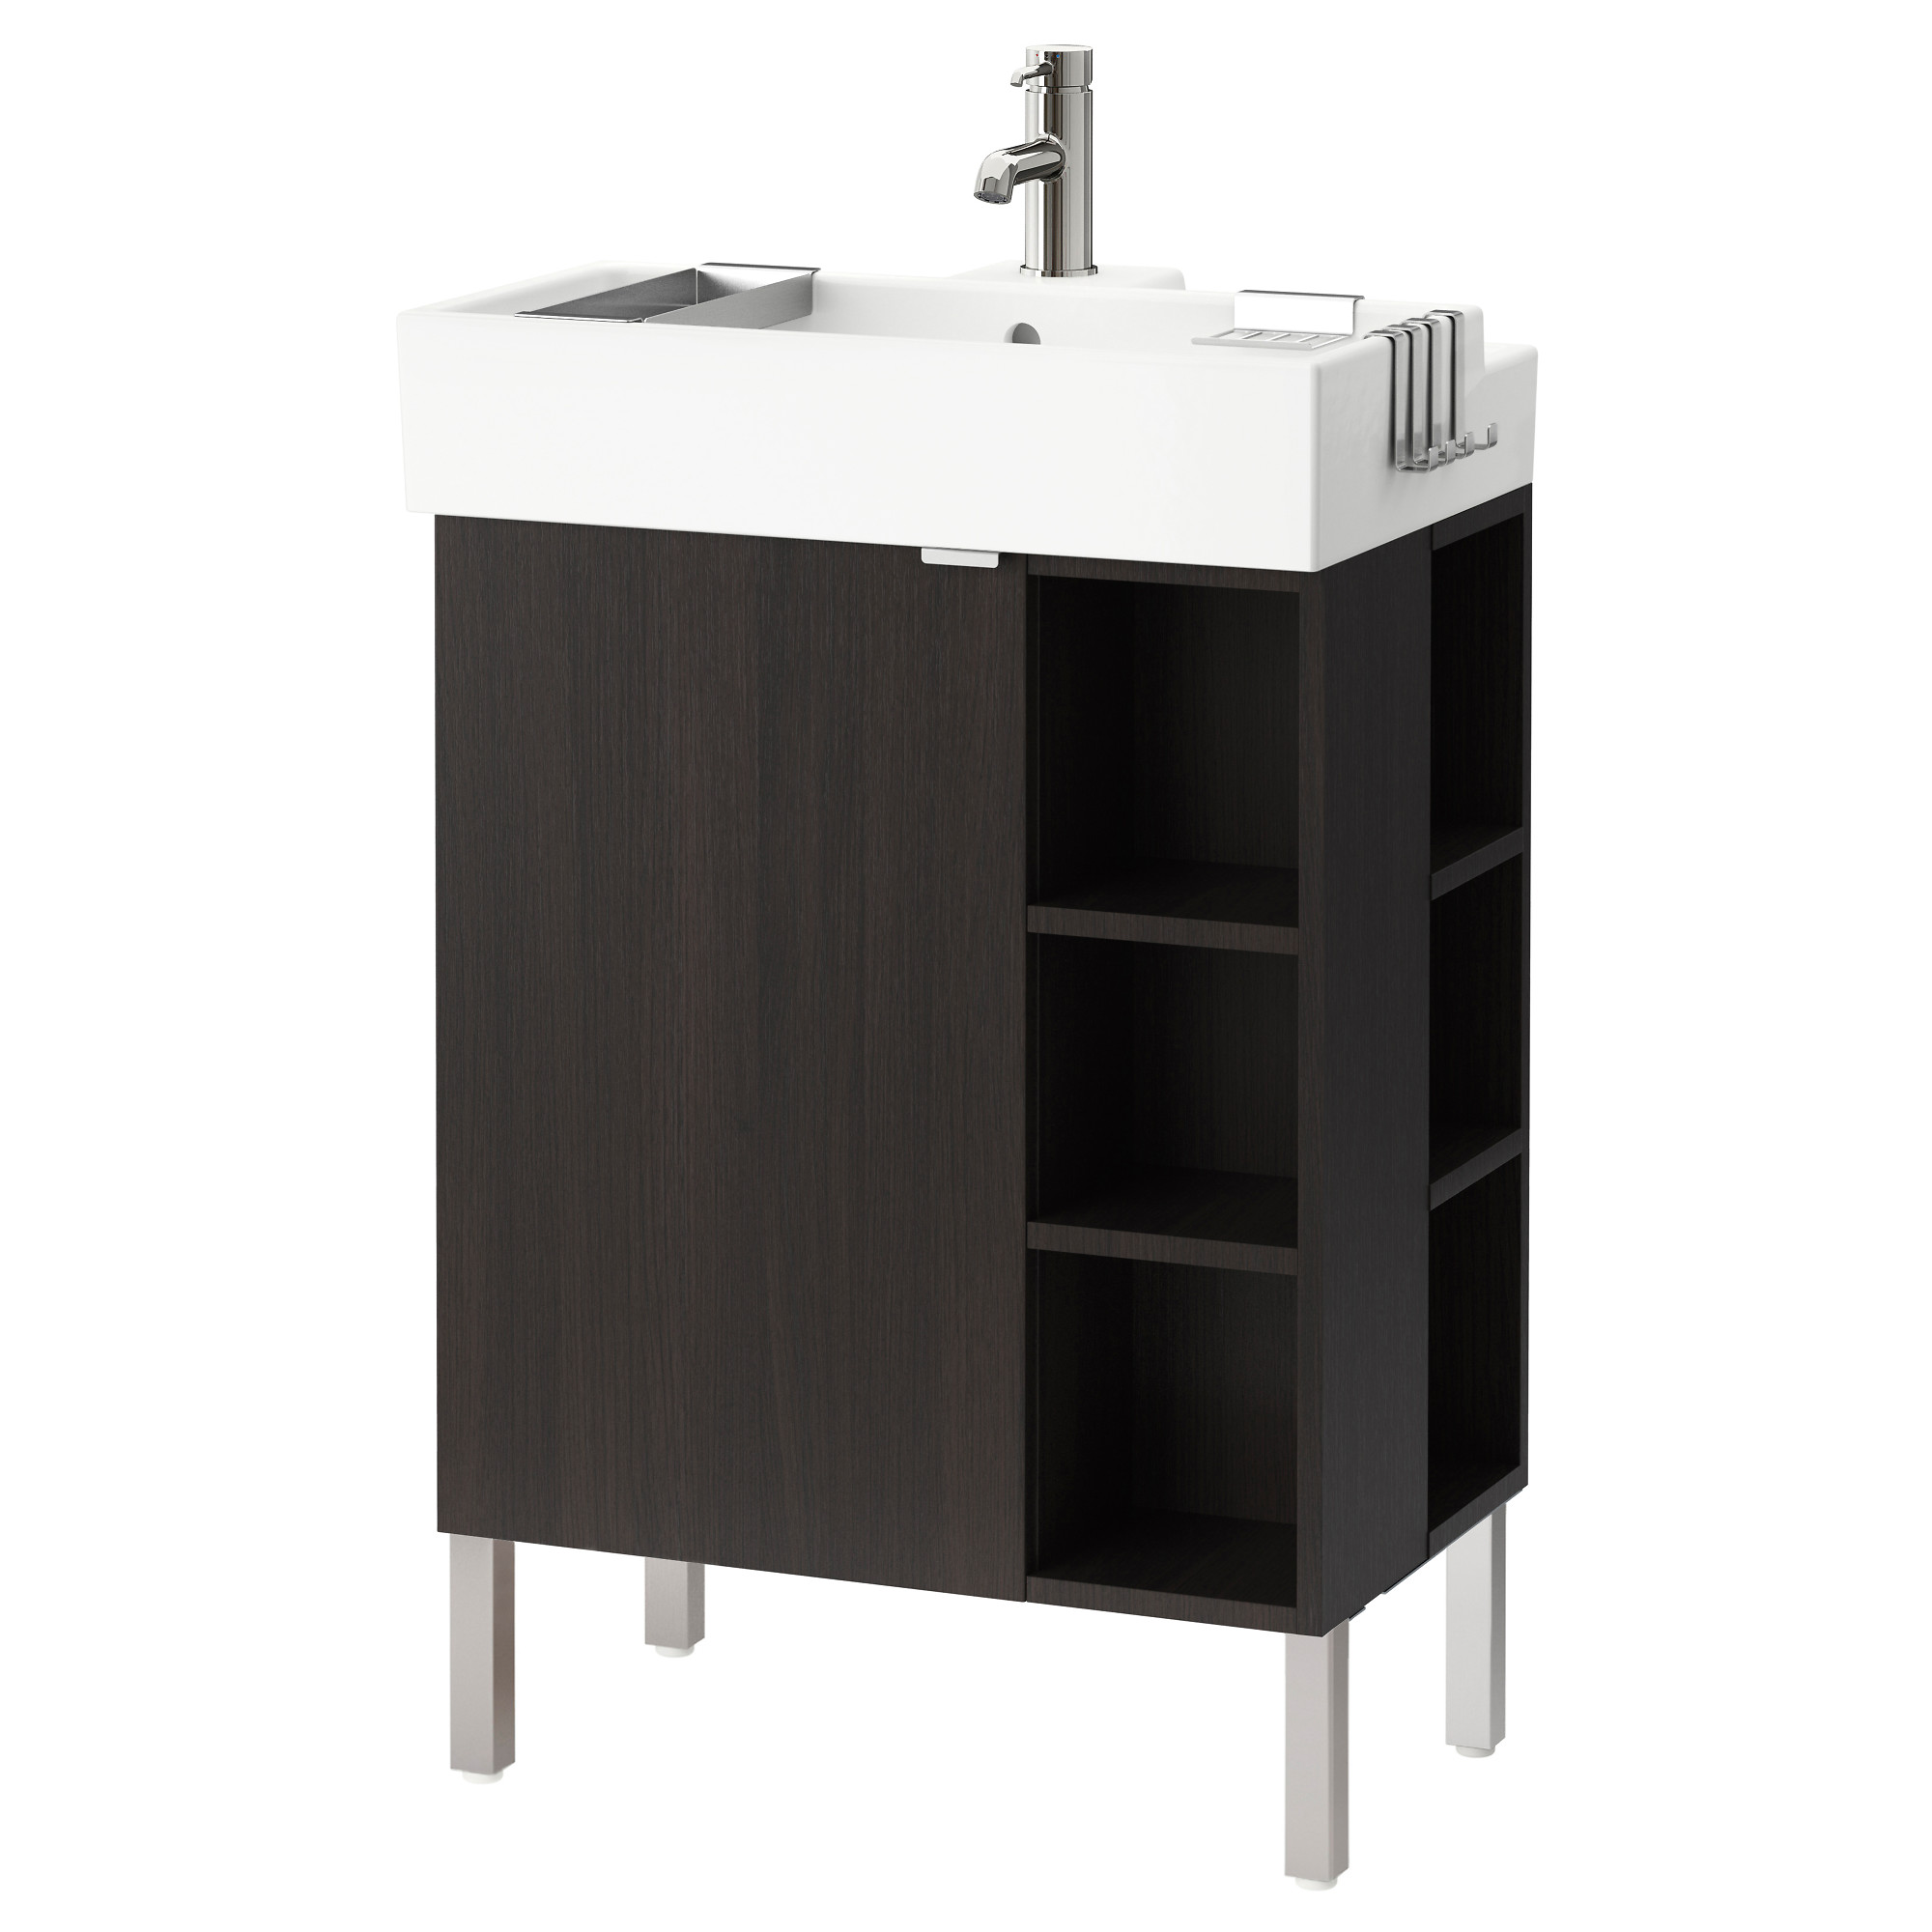 LILL NGEN sinK cabinet 1 door 2 end units  black brown Width. Sink Cabinets   Bathroom   IKEA